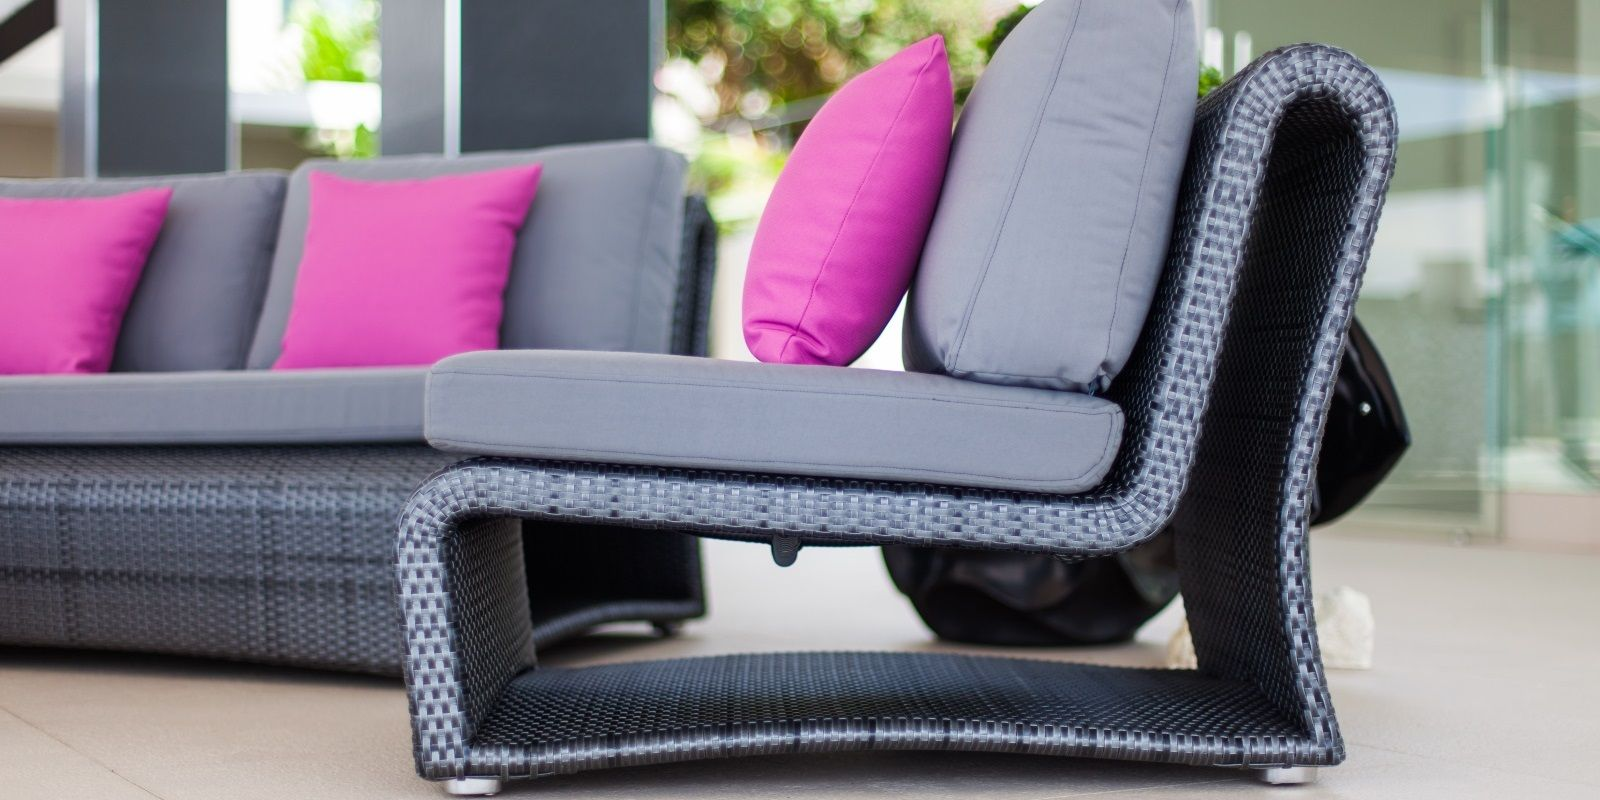 swing chair penang positions for exodontia sunweave international outdoor furniture